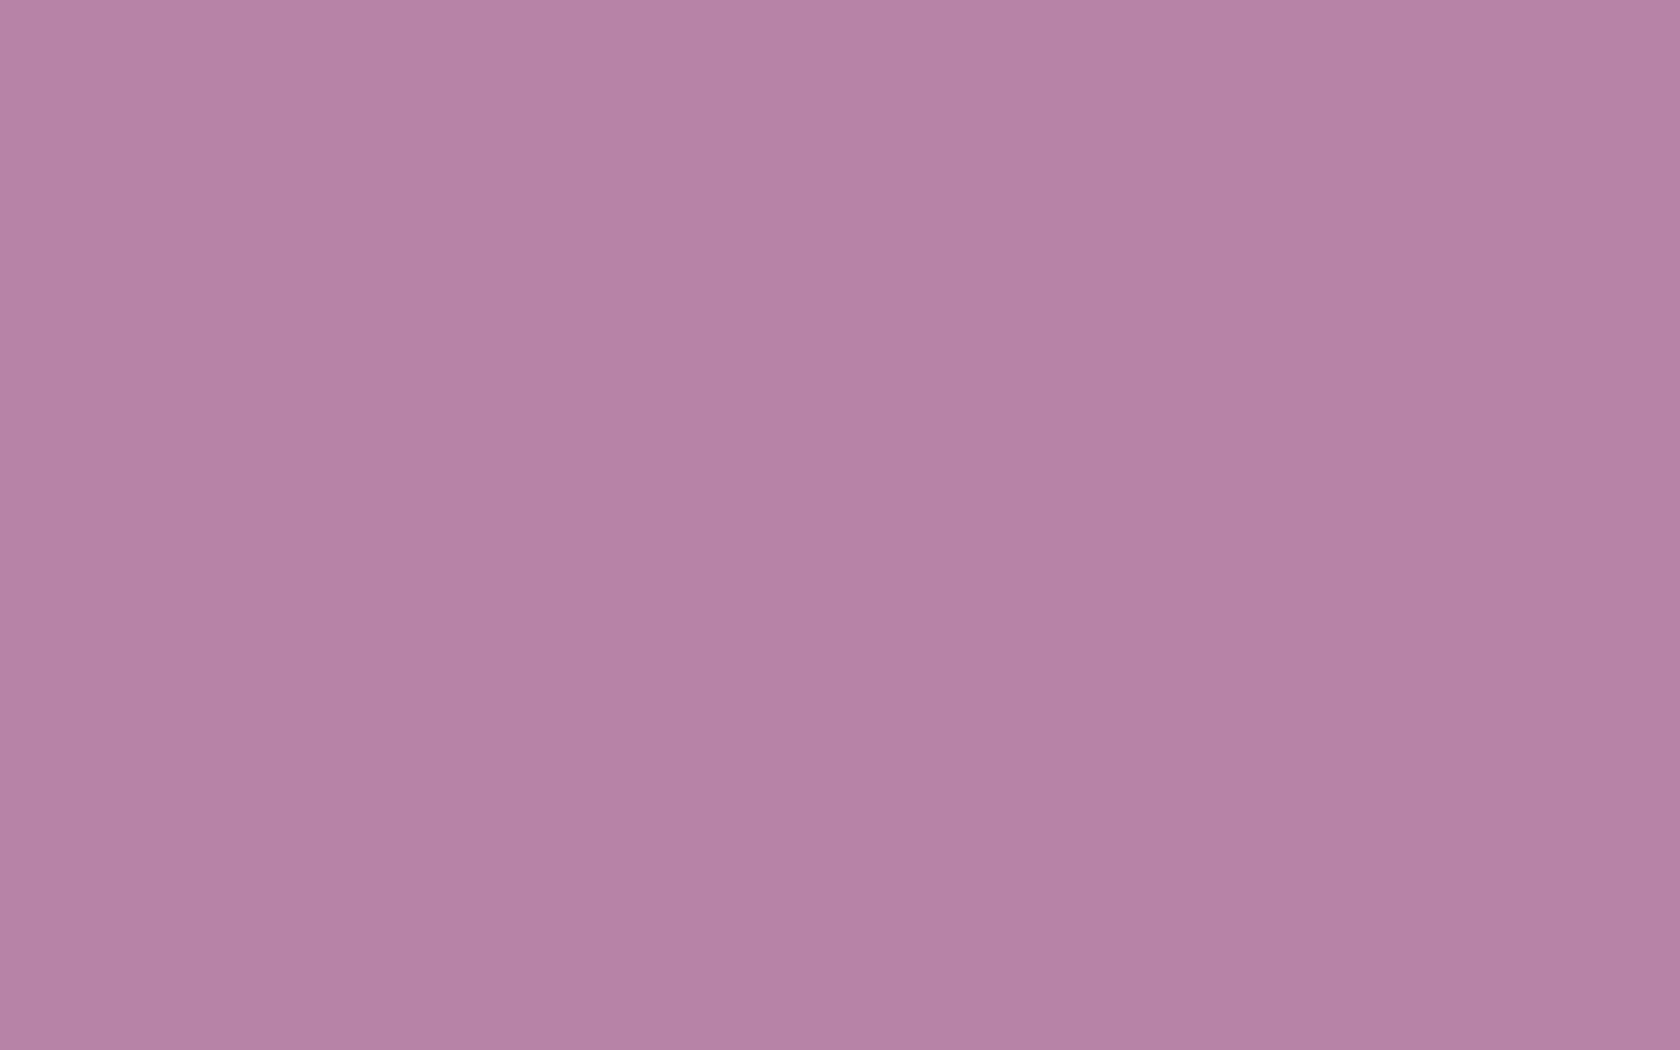 1680x1050 Opera Mauve Solid Color Background